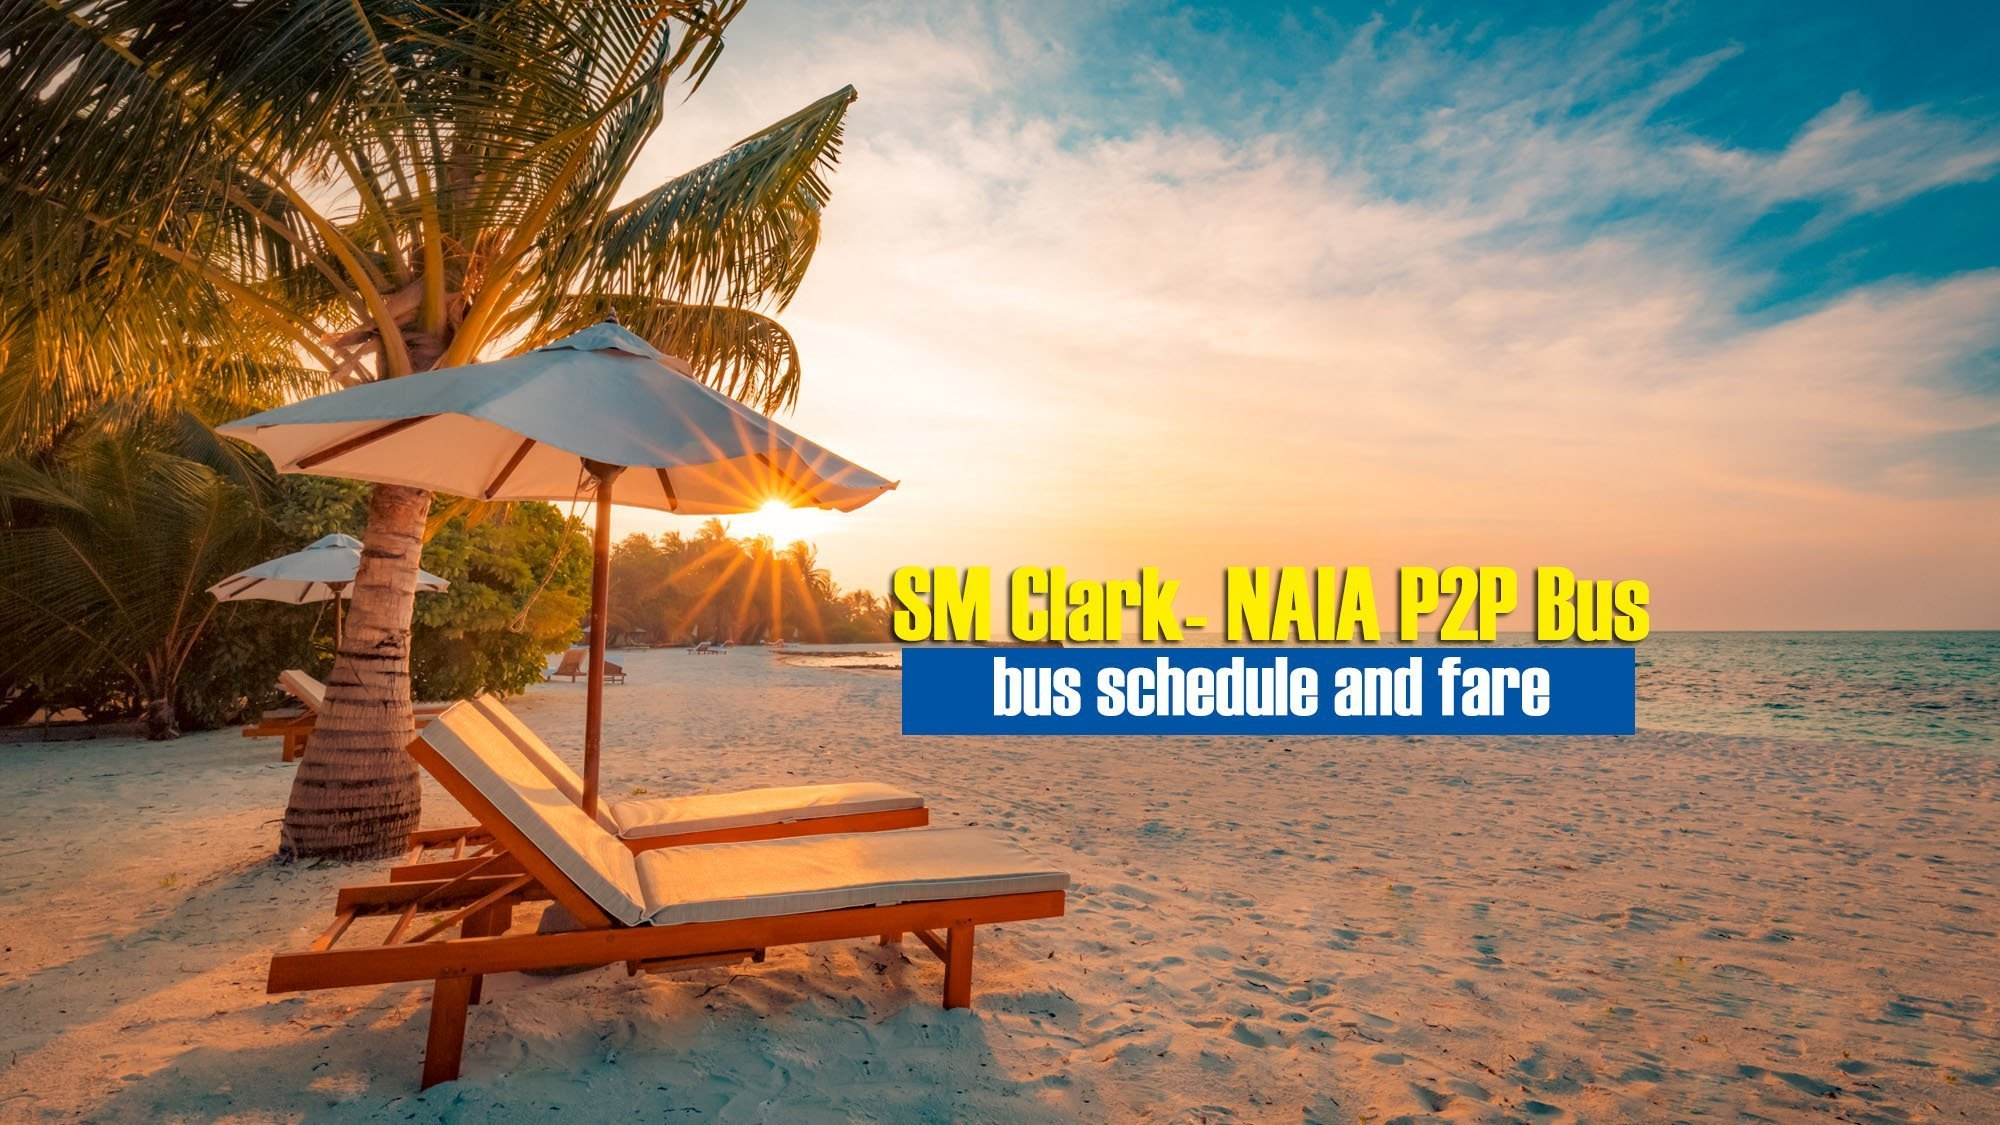 SM Clark to NAIA: 2019 P2P Bus Schedule